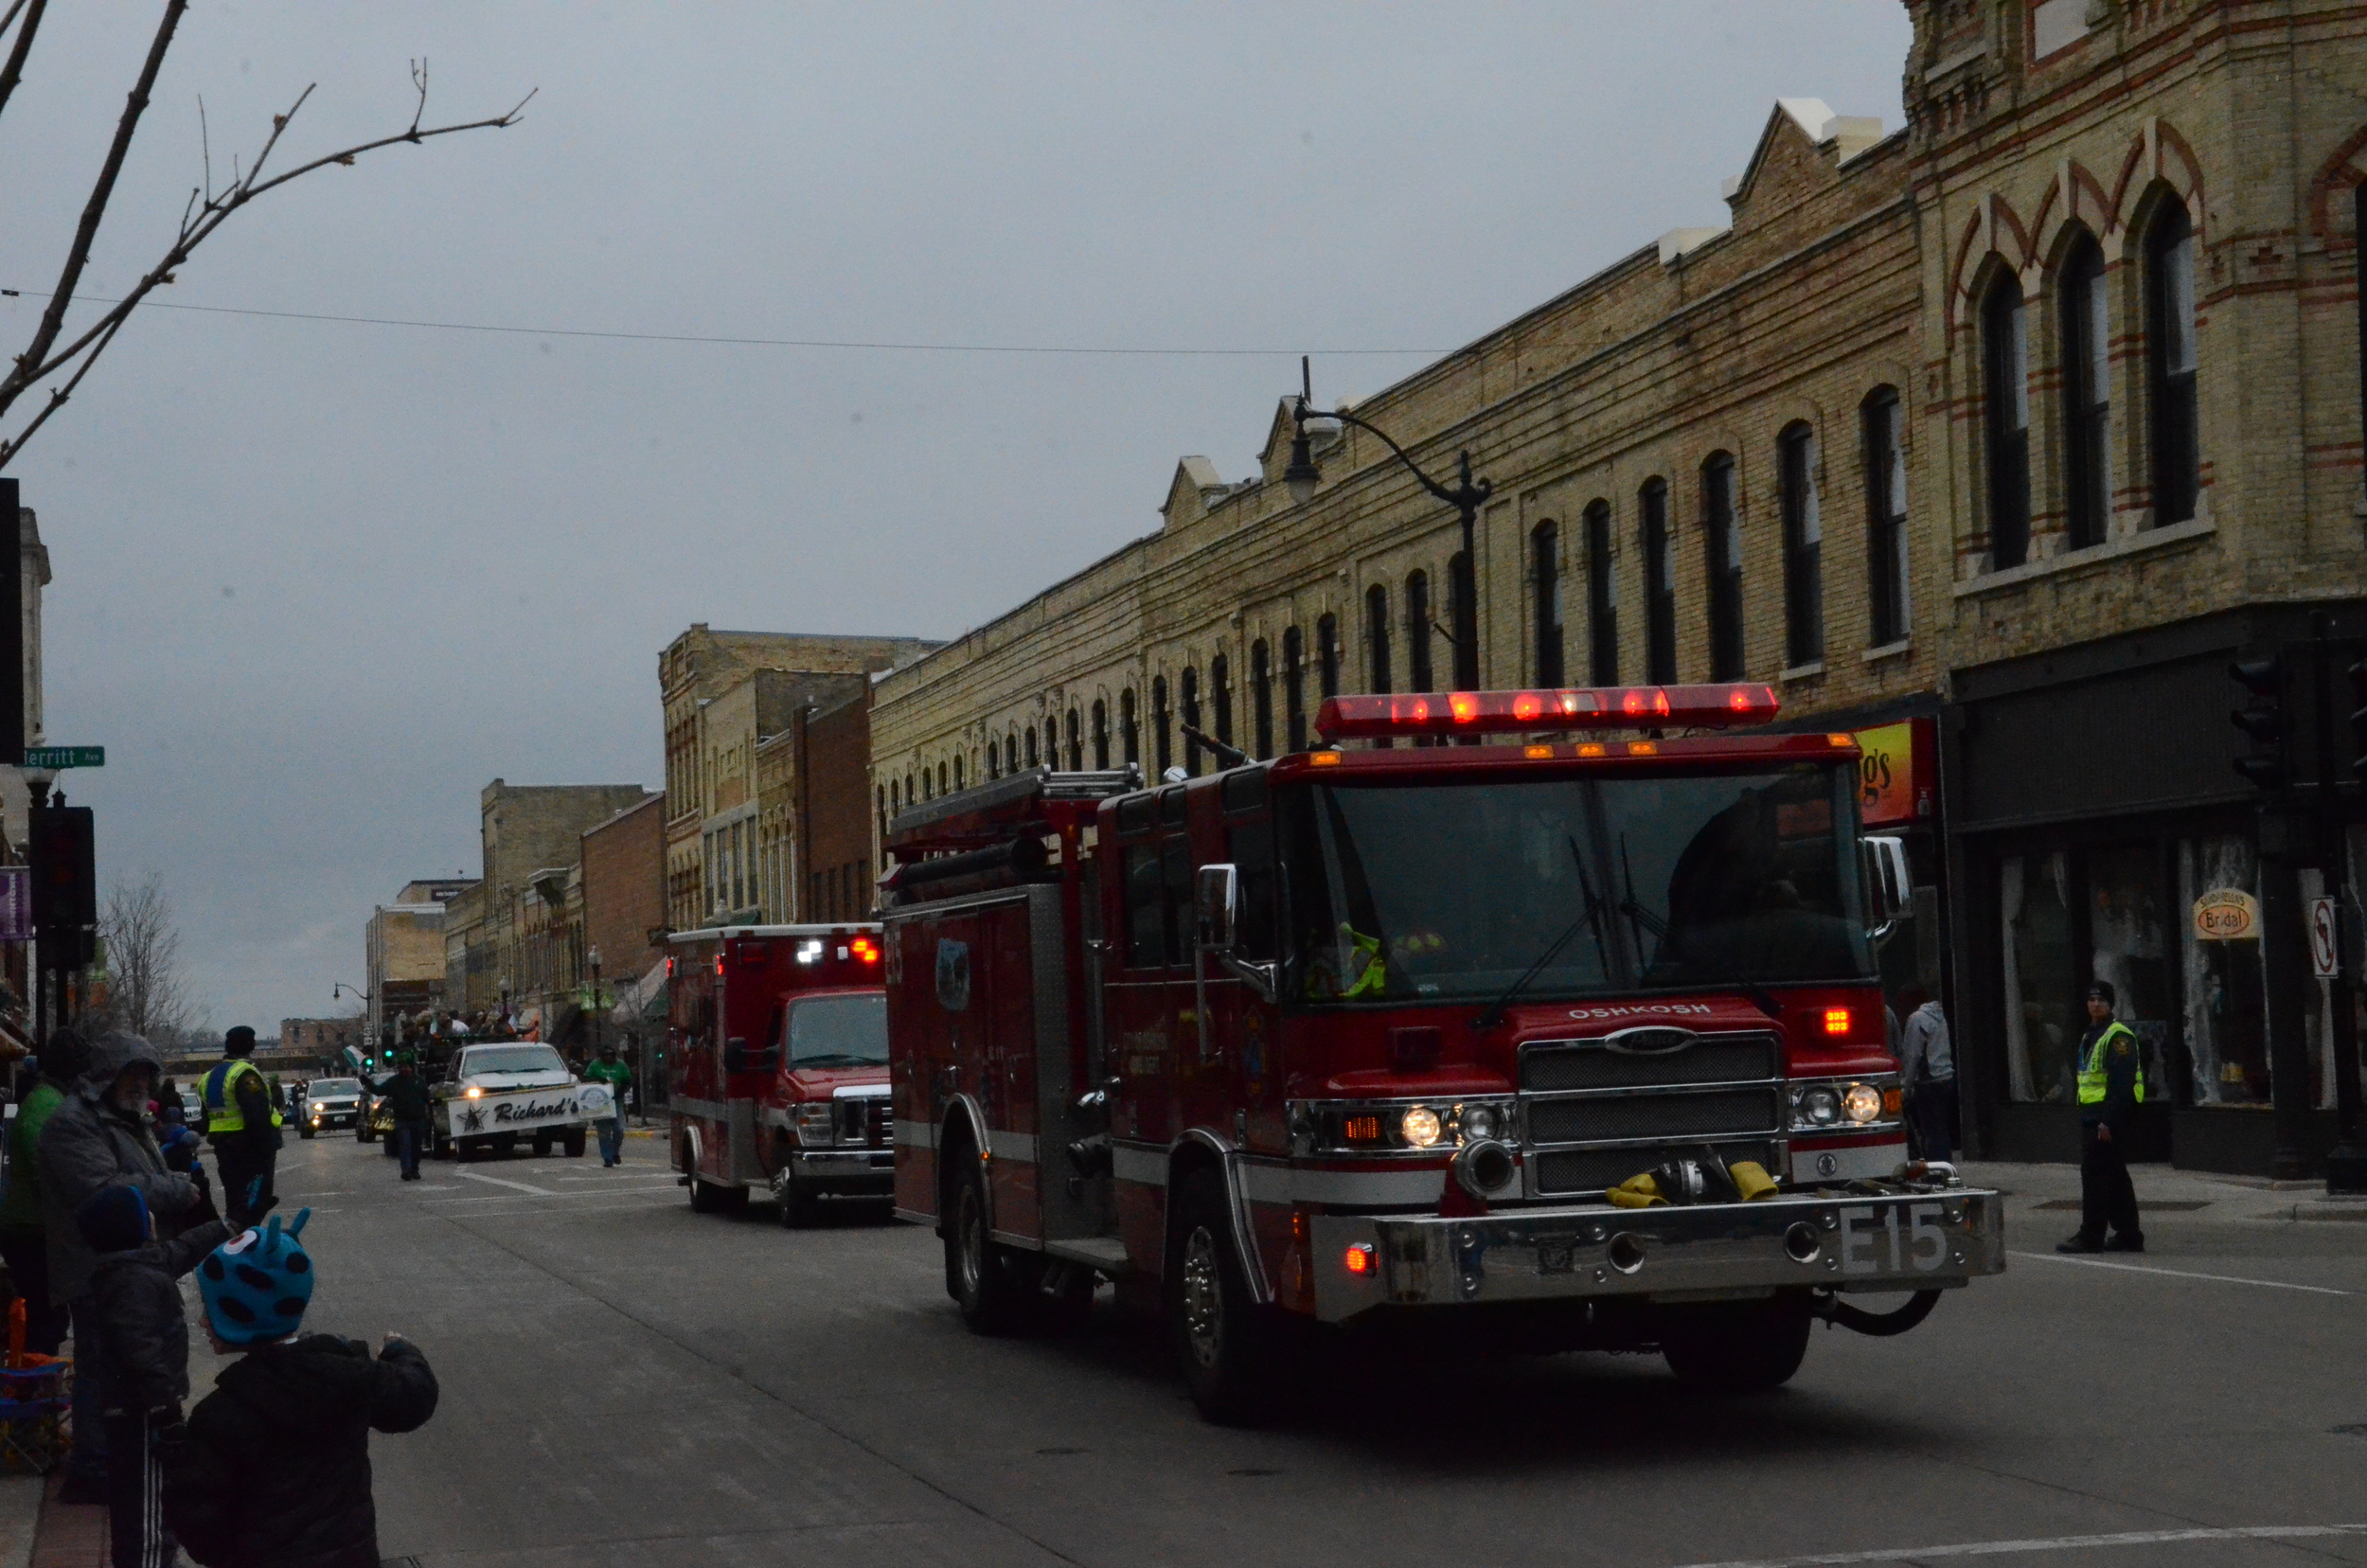 he sirens can be heard for miles as the an Oshkosh firetruck and ambulance make their way through the parade.